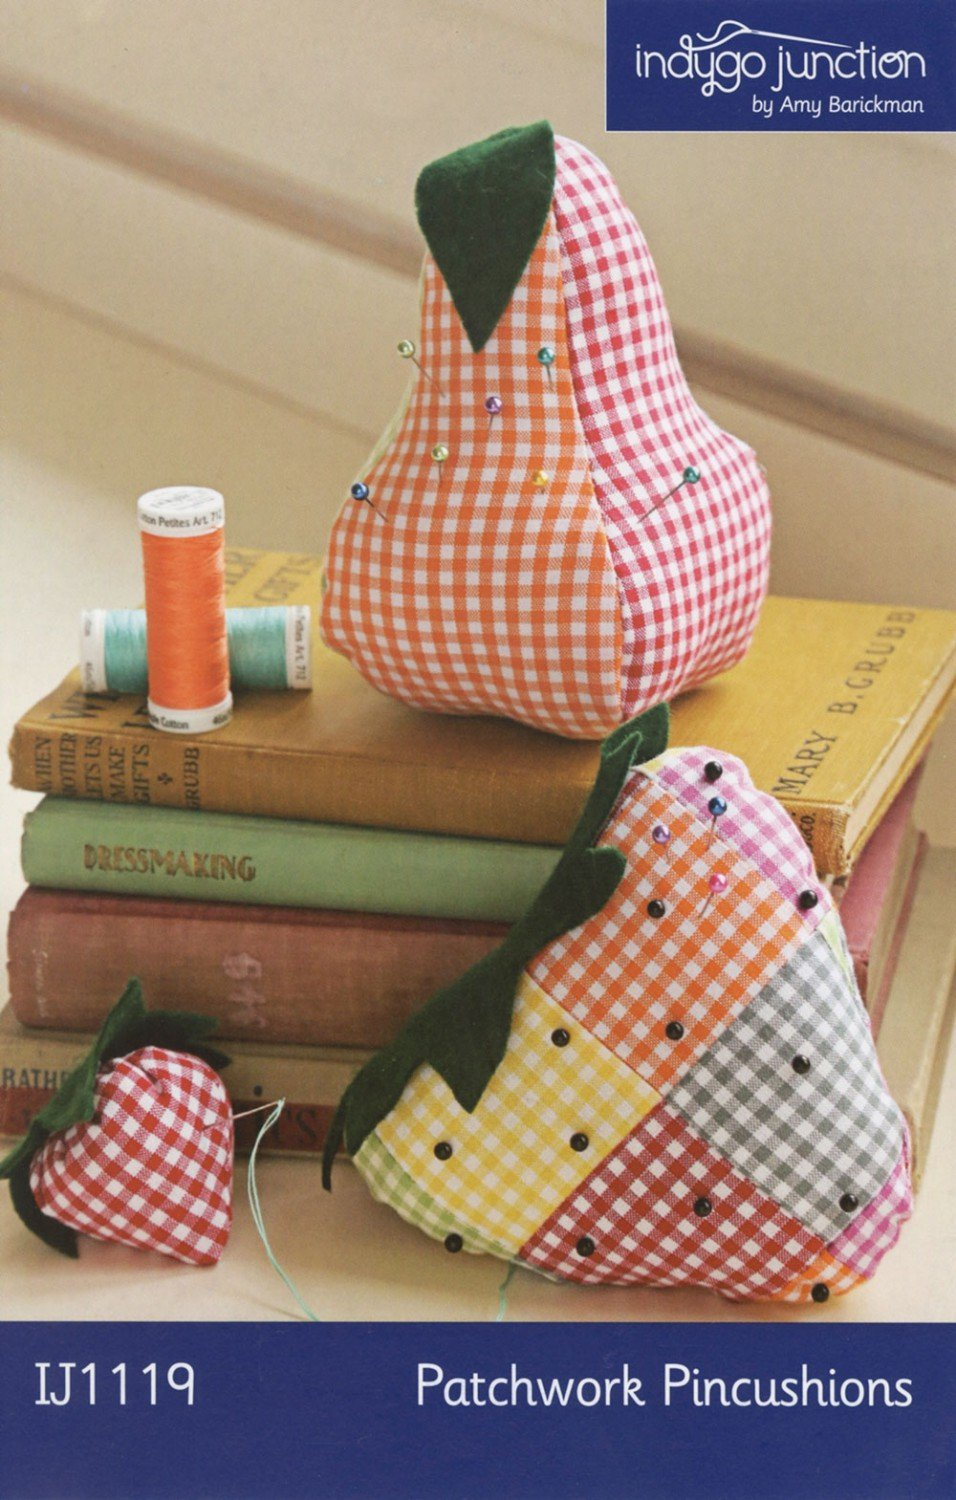 Patchworks Pincushions